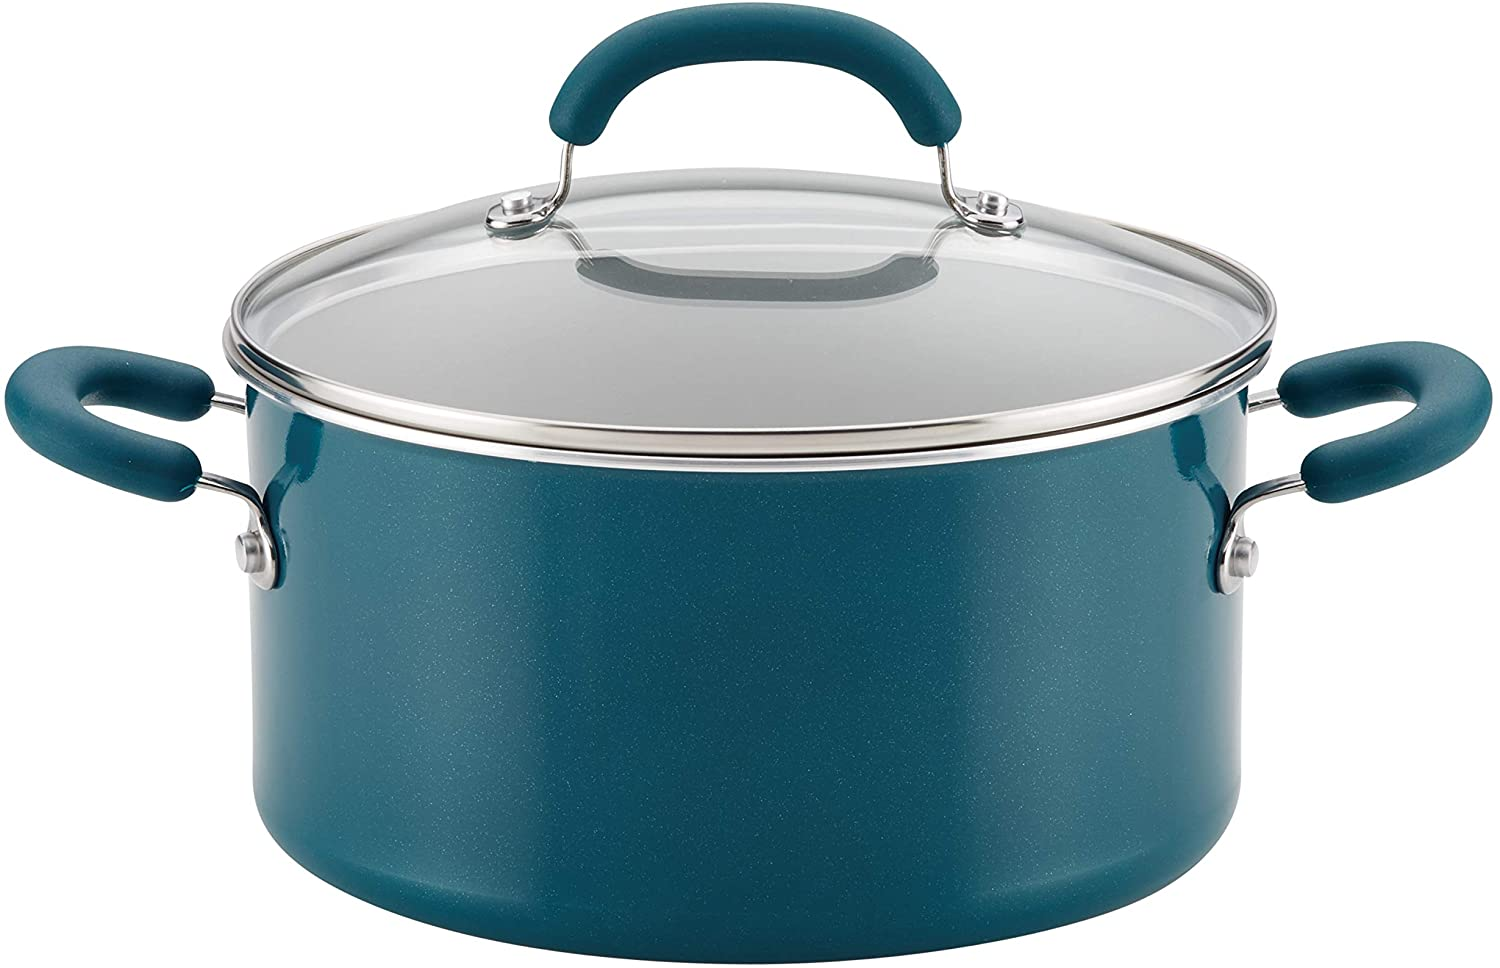 Rachael Ray Create Delicious Nonstick Stock Pot/Stockpot with Lid - 6 Quart, Blue